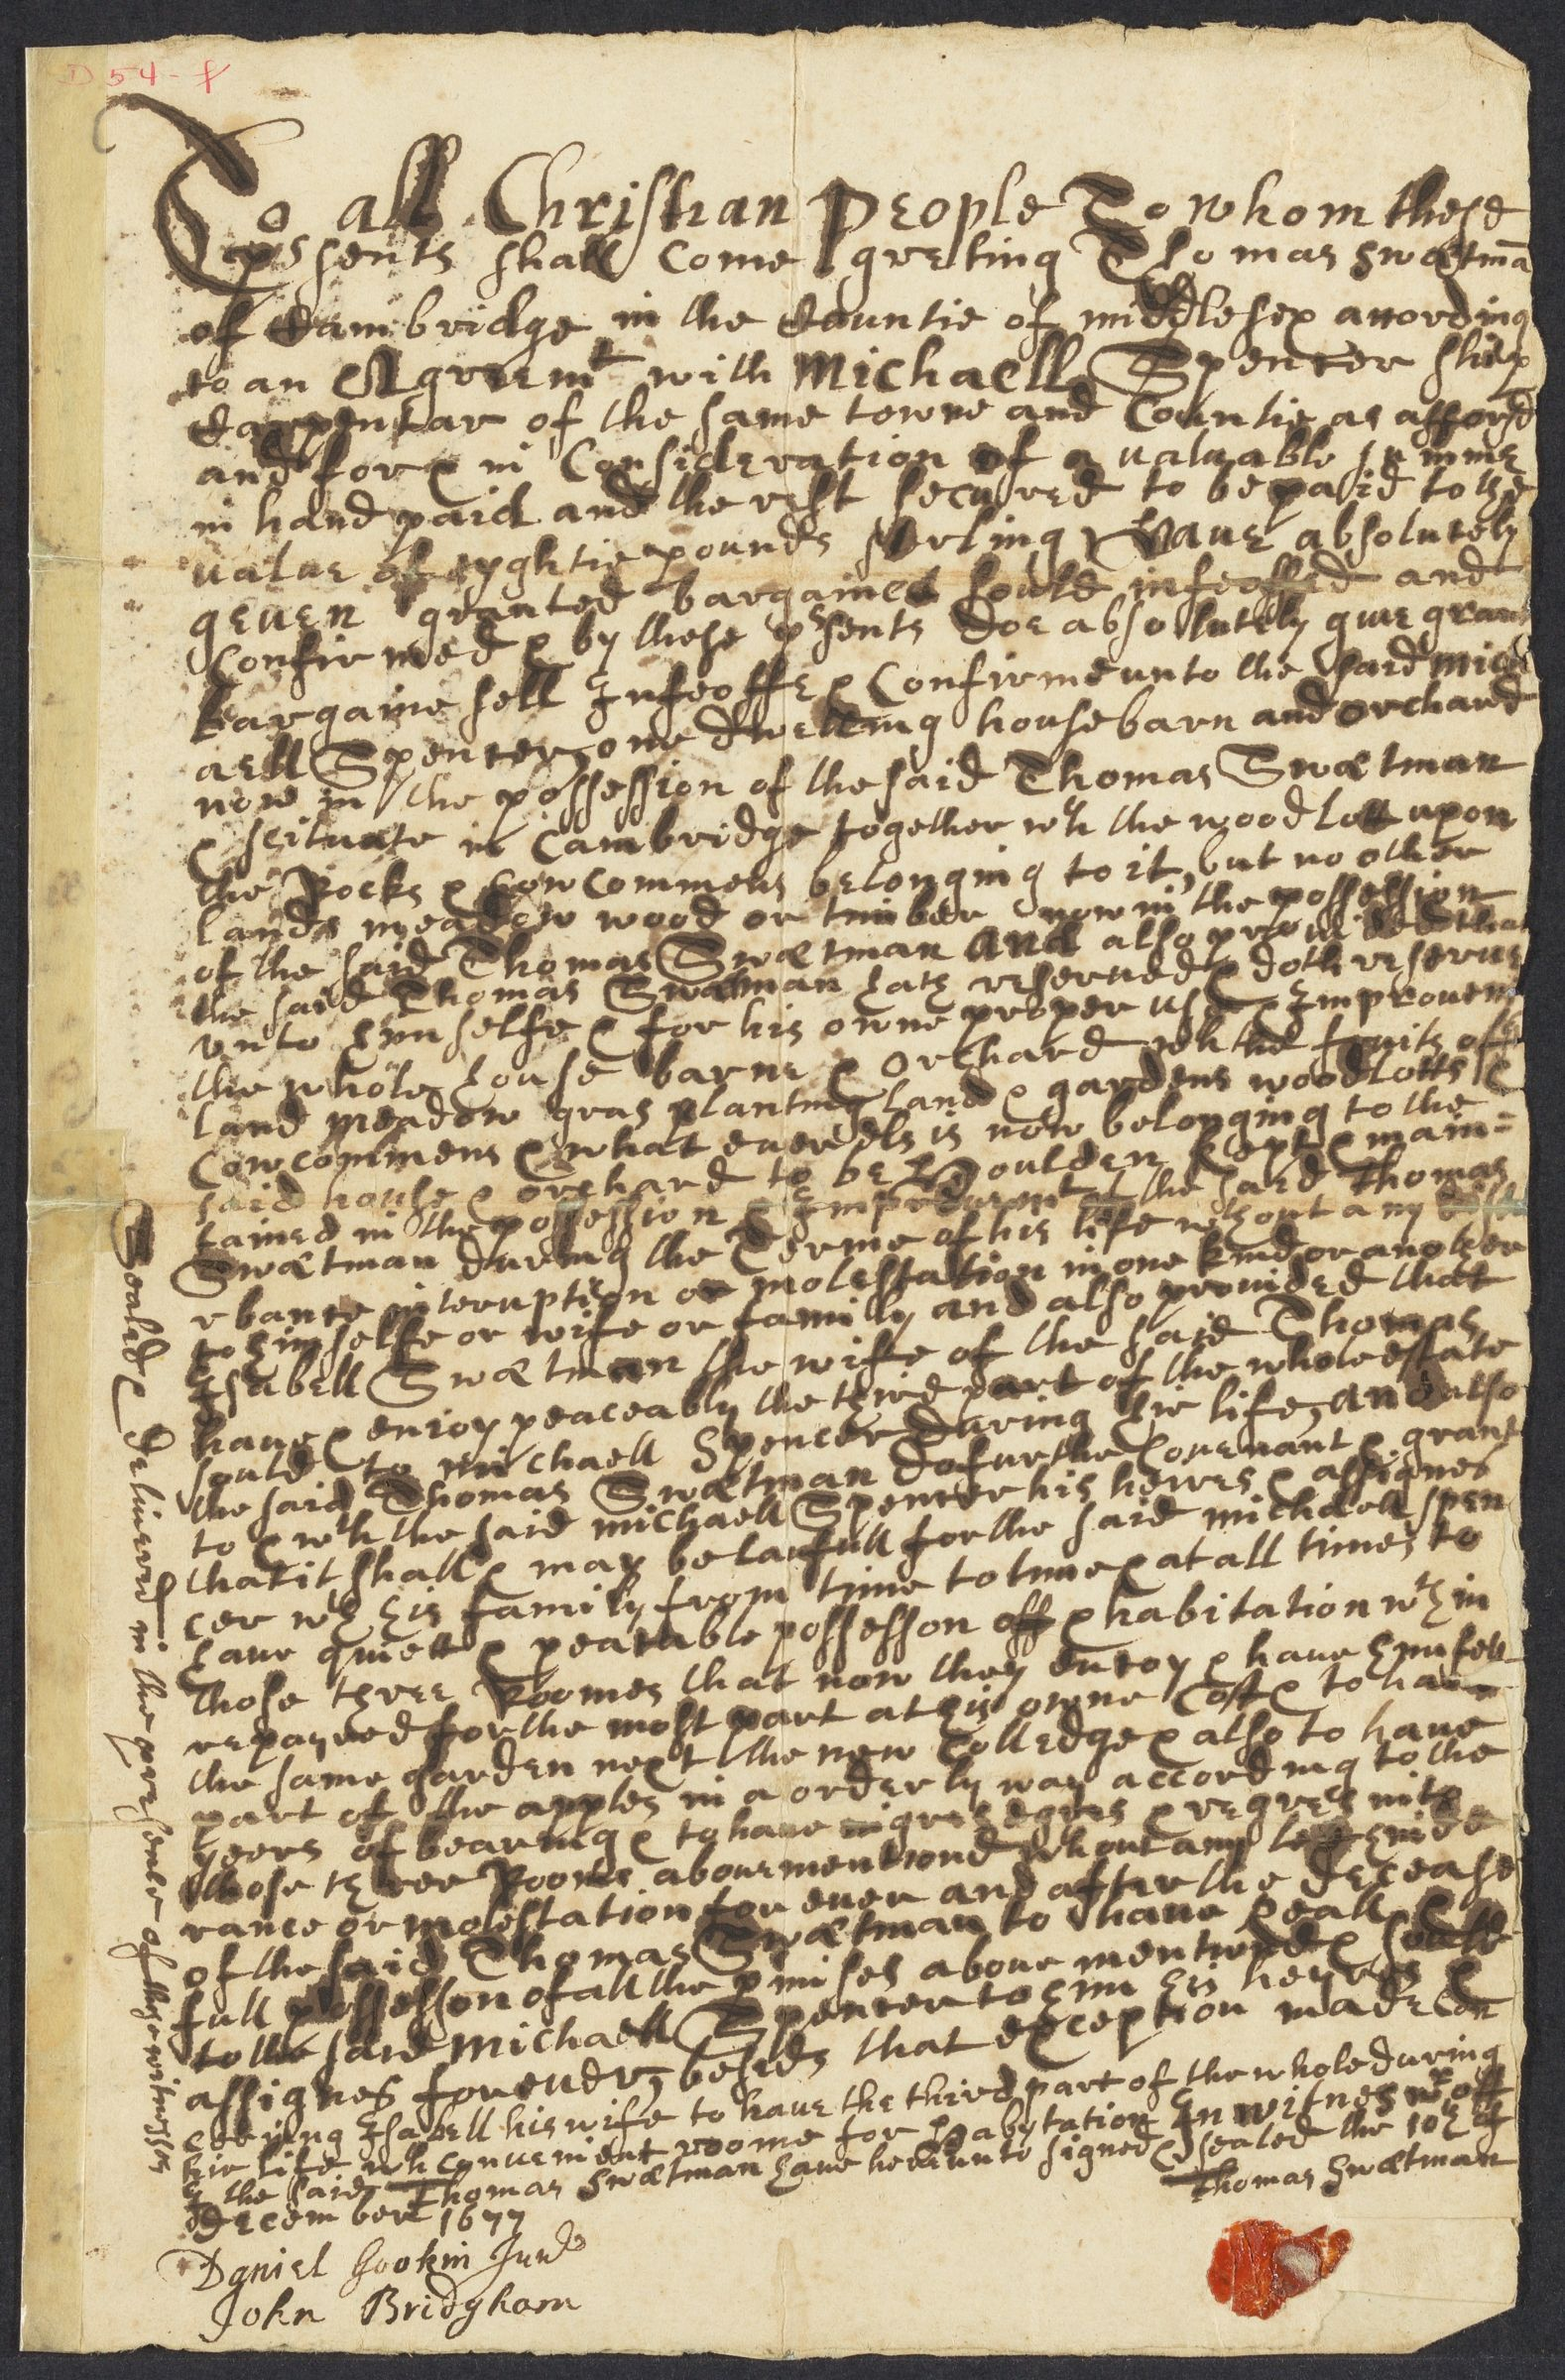 Deed of feoffment for property in Cambridge, Massachusetts: from Thomas Sweetman to Michael Spencer, 1677 December 10